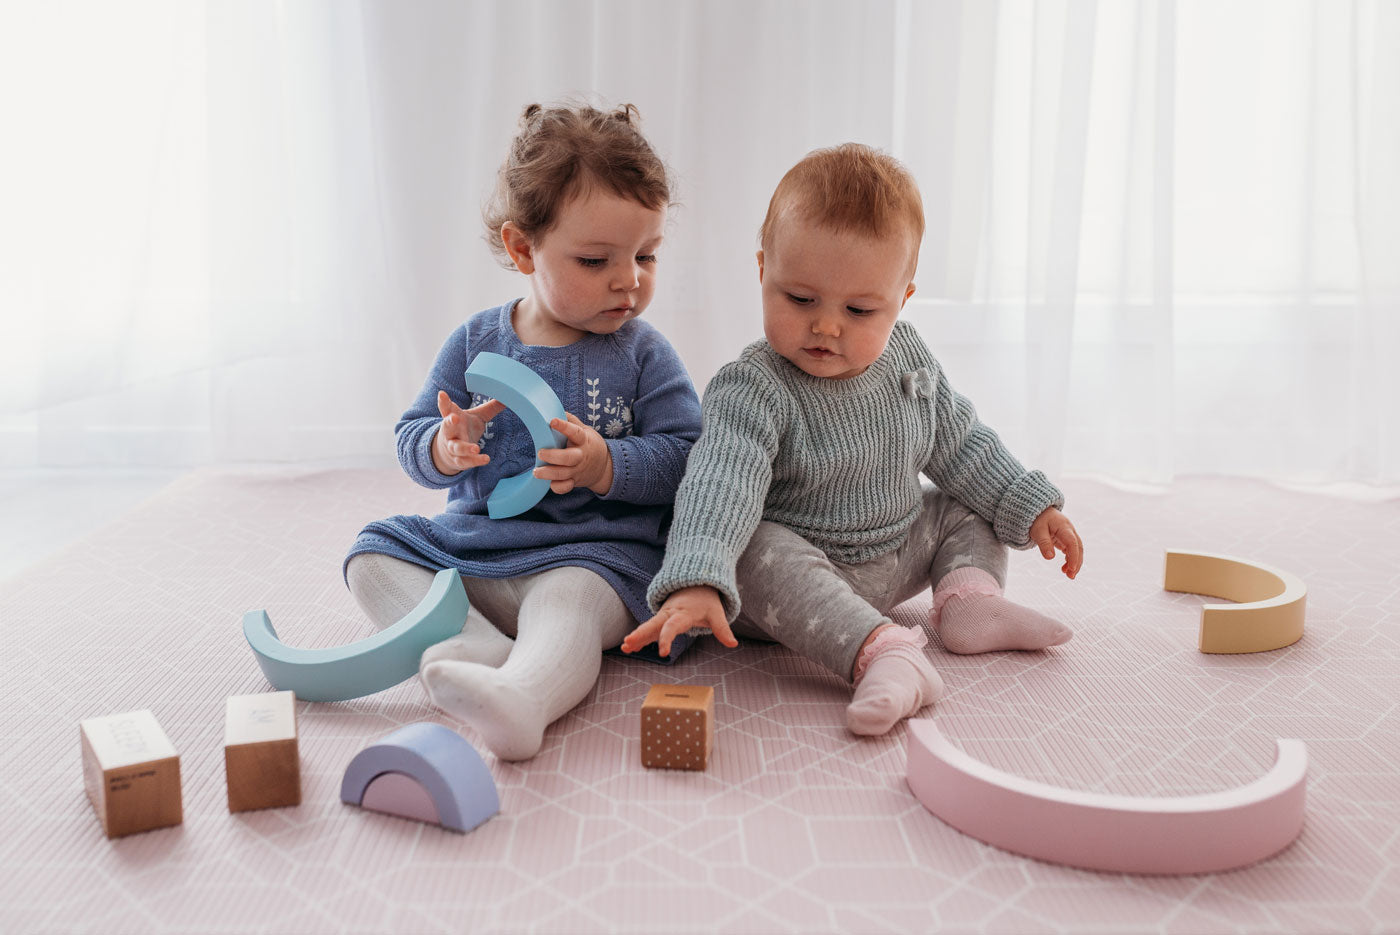 Blush Play mat: foam playmat